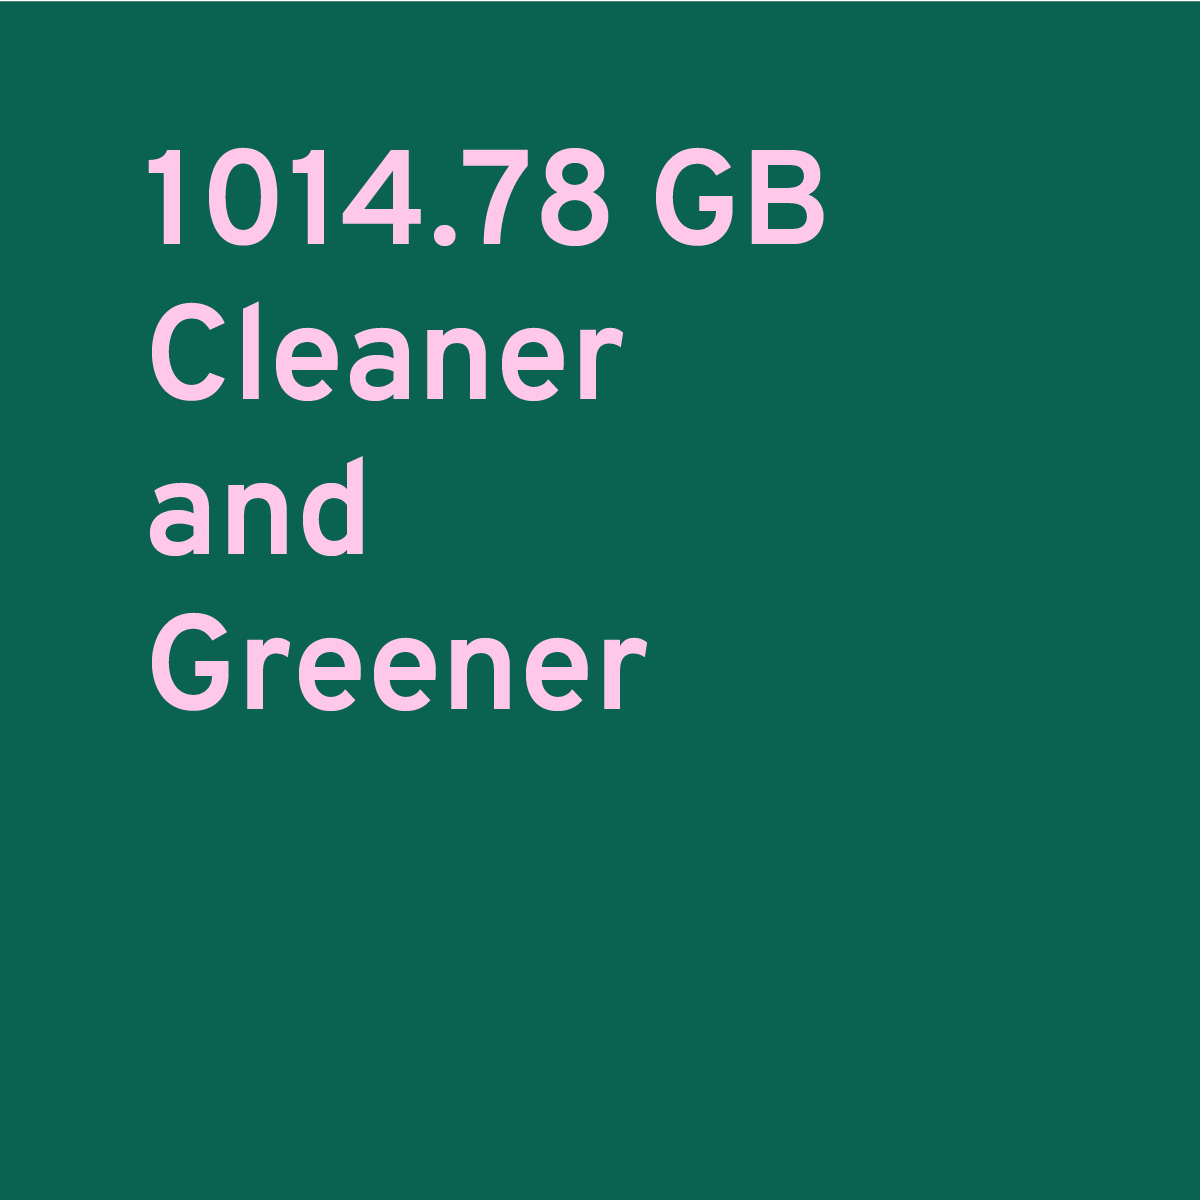 1014.78 GB cleaner and greener